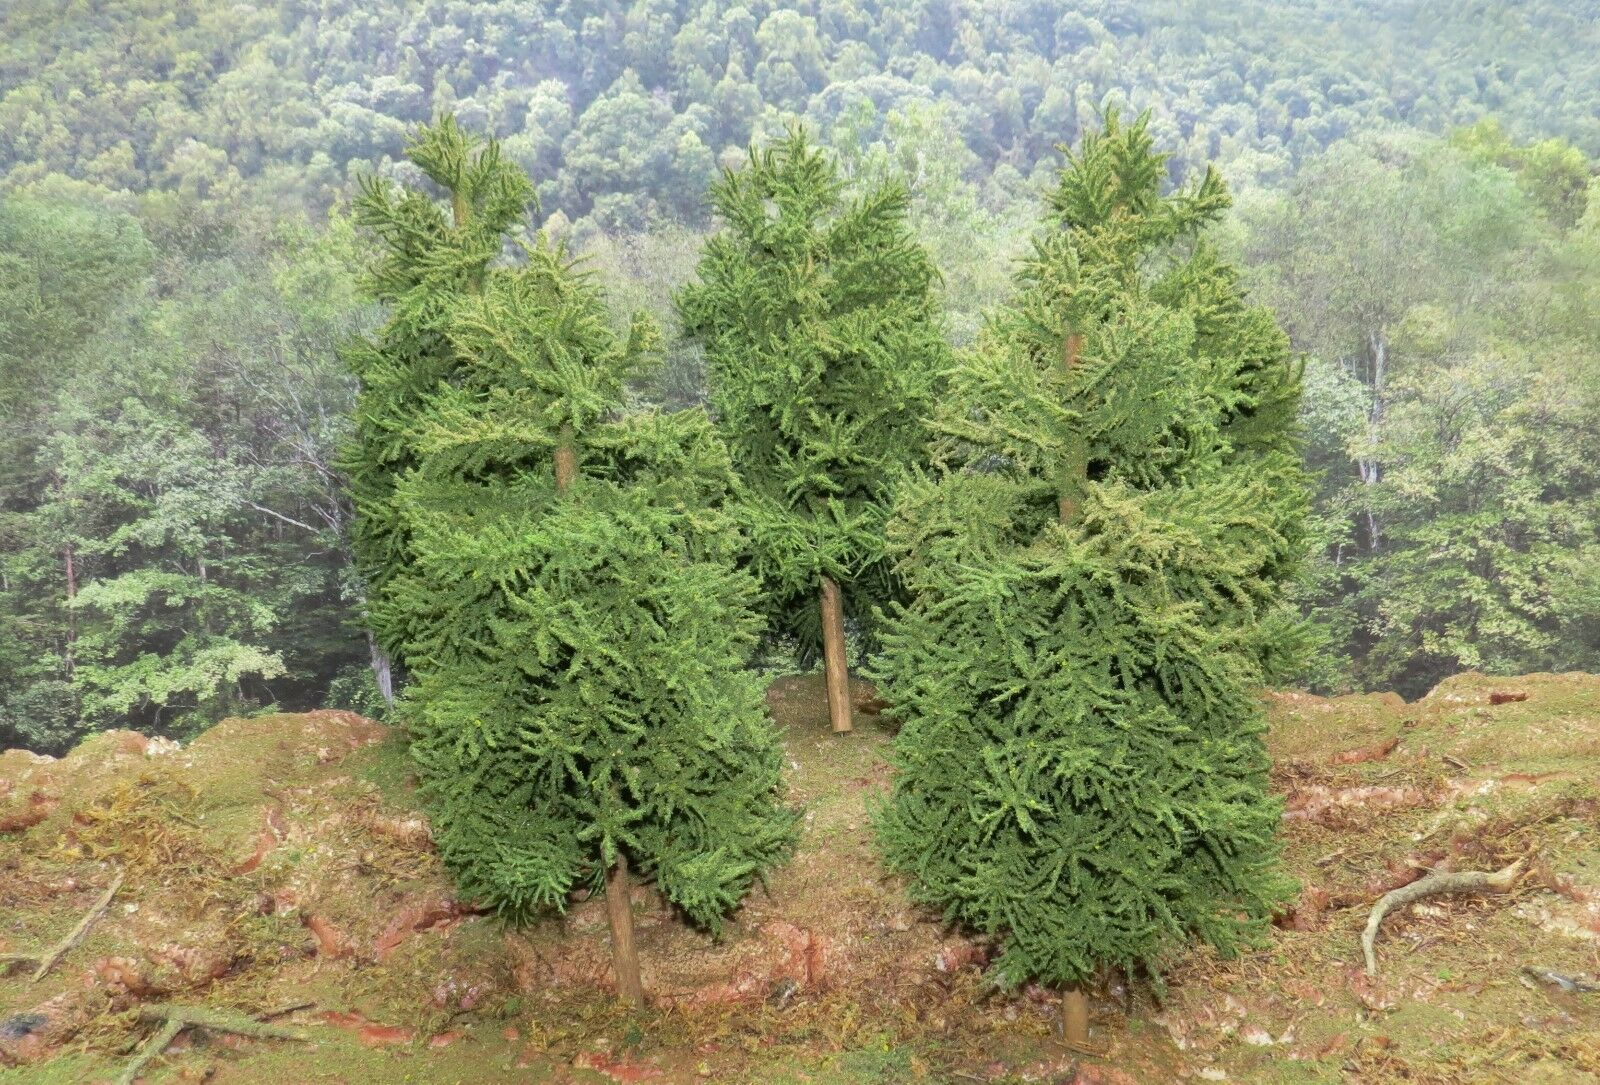 5 Realistic HO , ON30, and O Scale 12 inch Handmade Pine Trees for Train Diorama